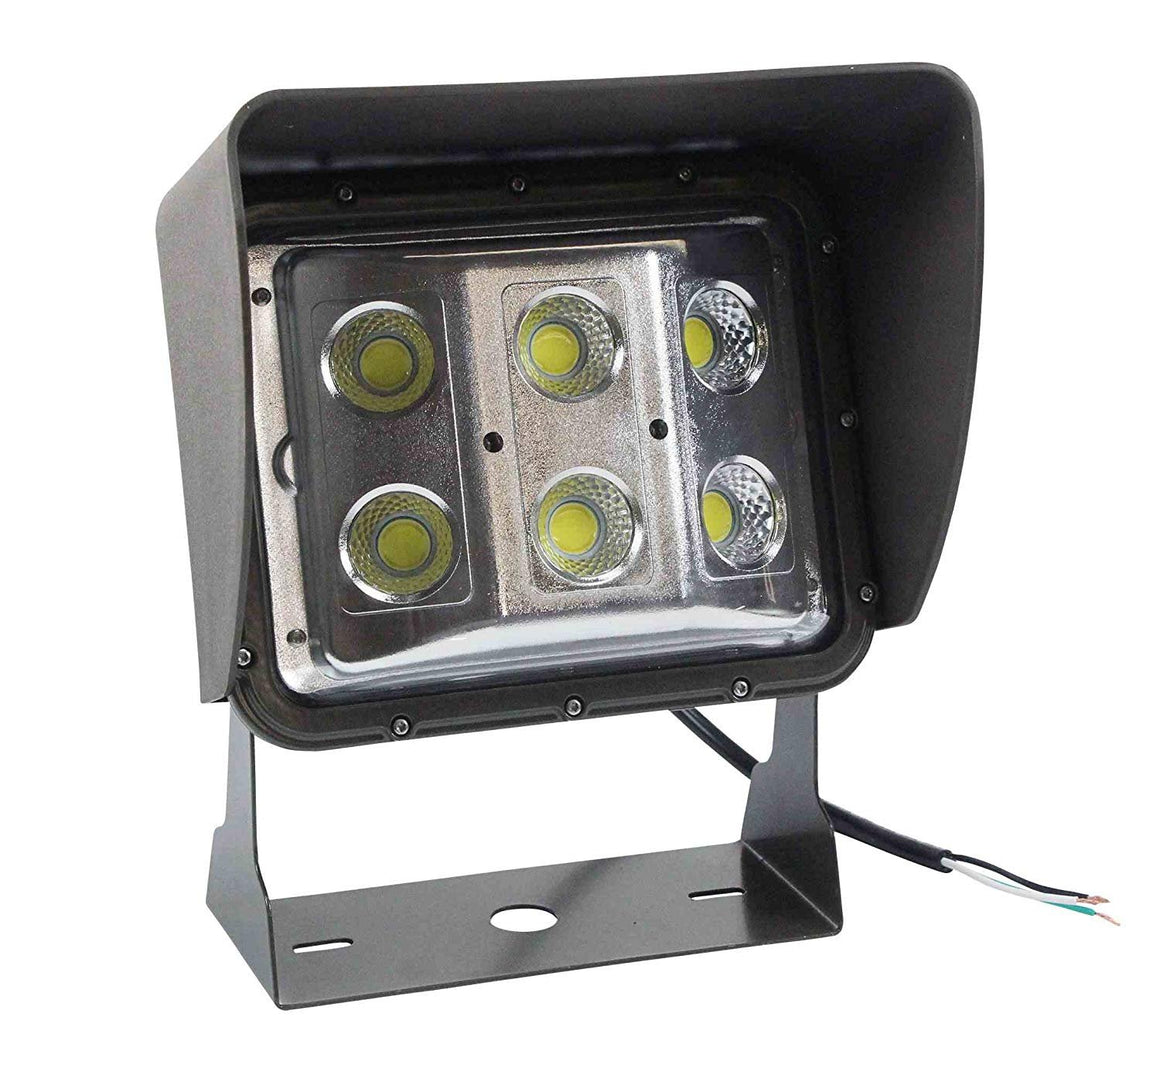 60 Watt Low Profile LED Wall Pack Light with Glare Shield - Wide Flood Beam - U-Bracket Mount